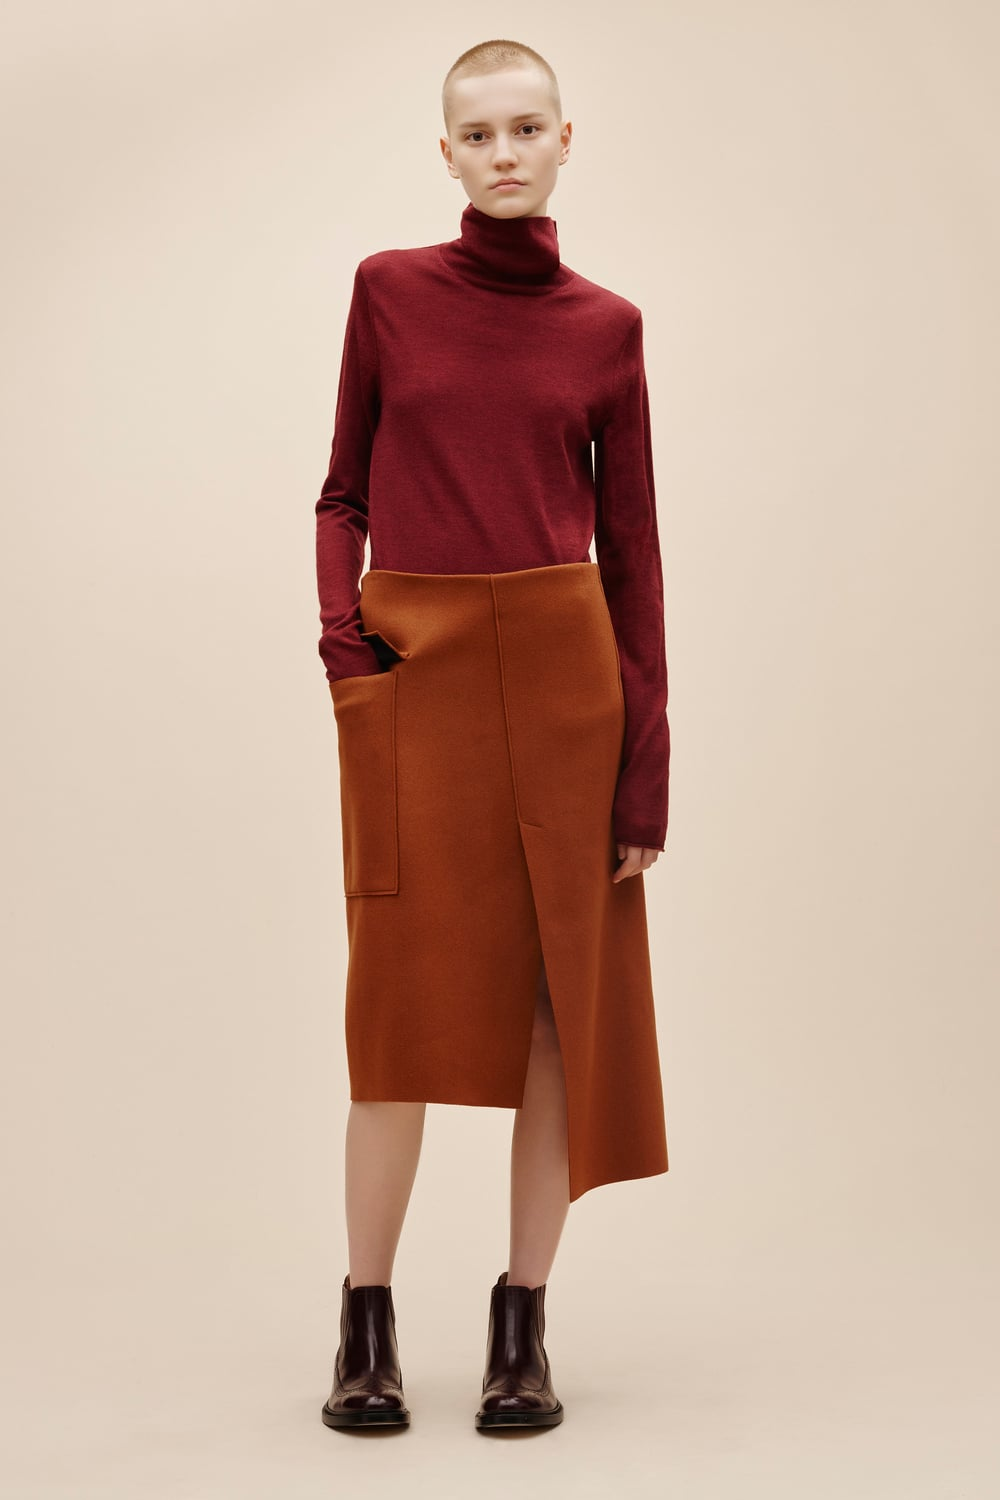 joseph-pre-fall-2016-lookbook-29.jpg